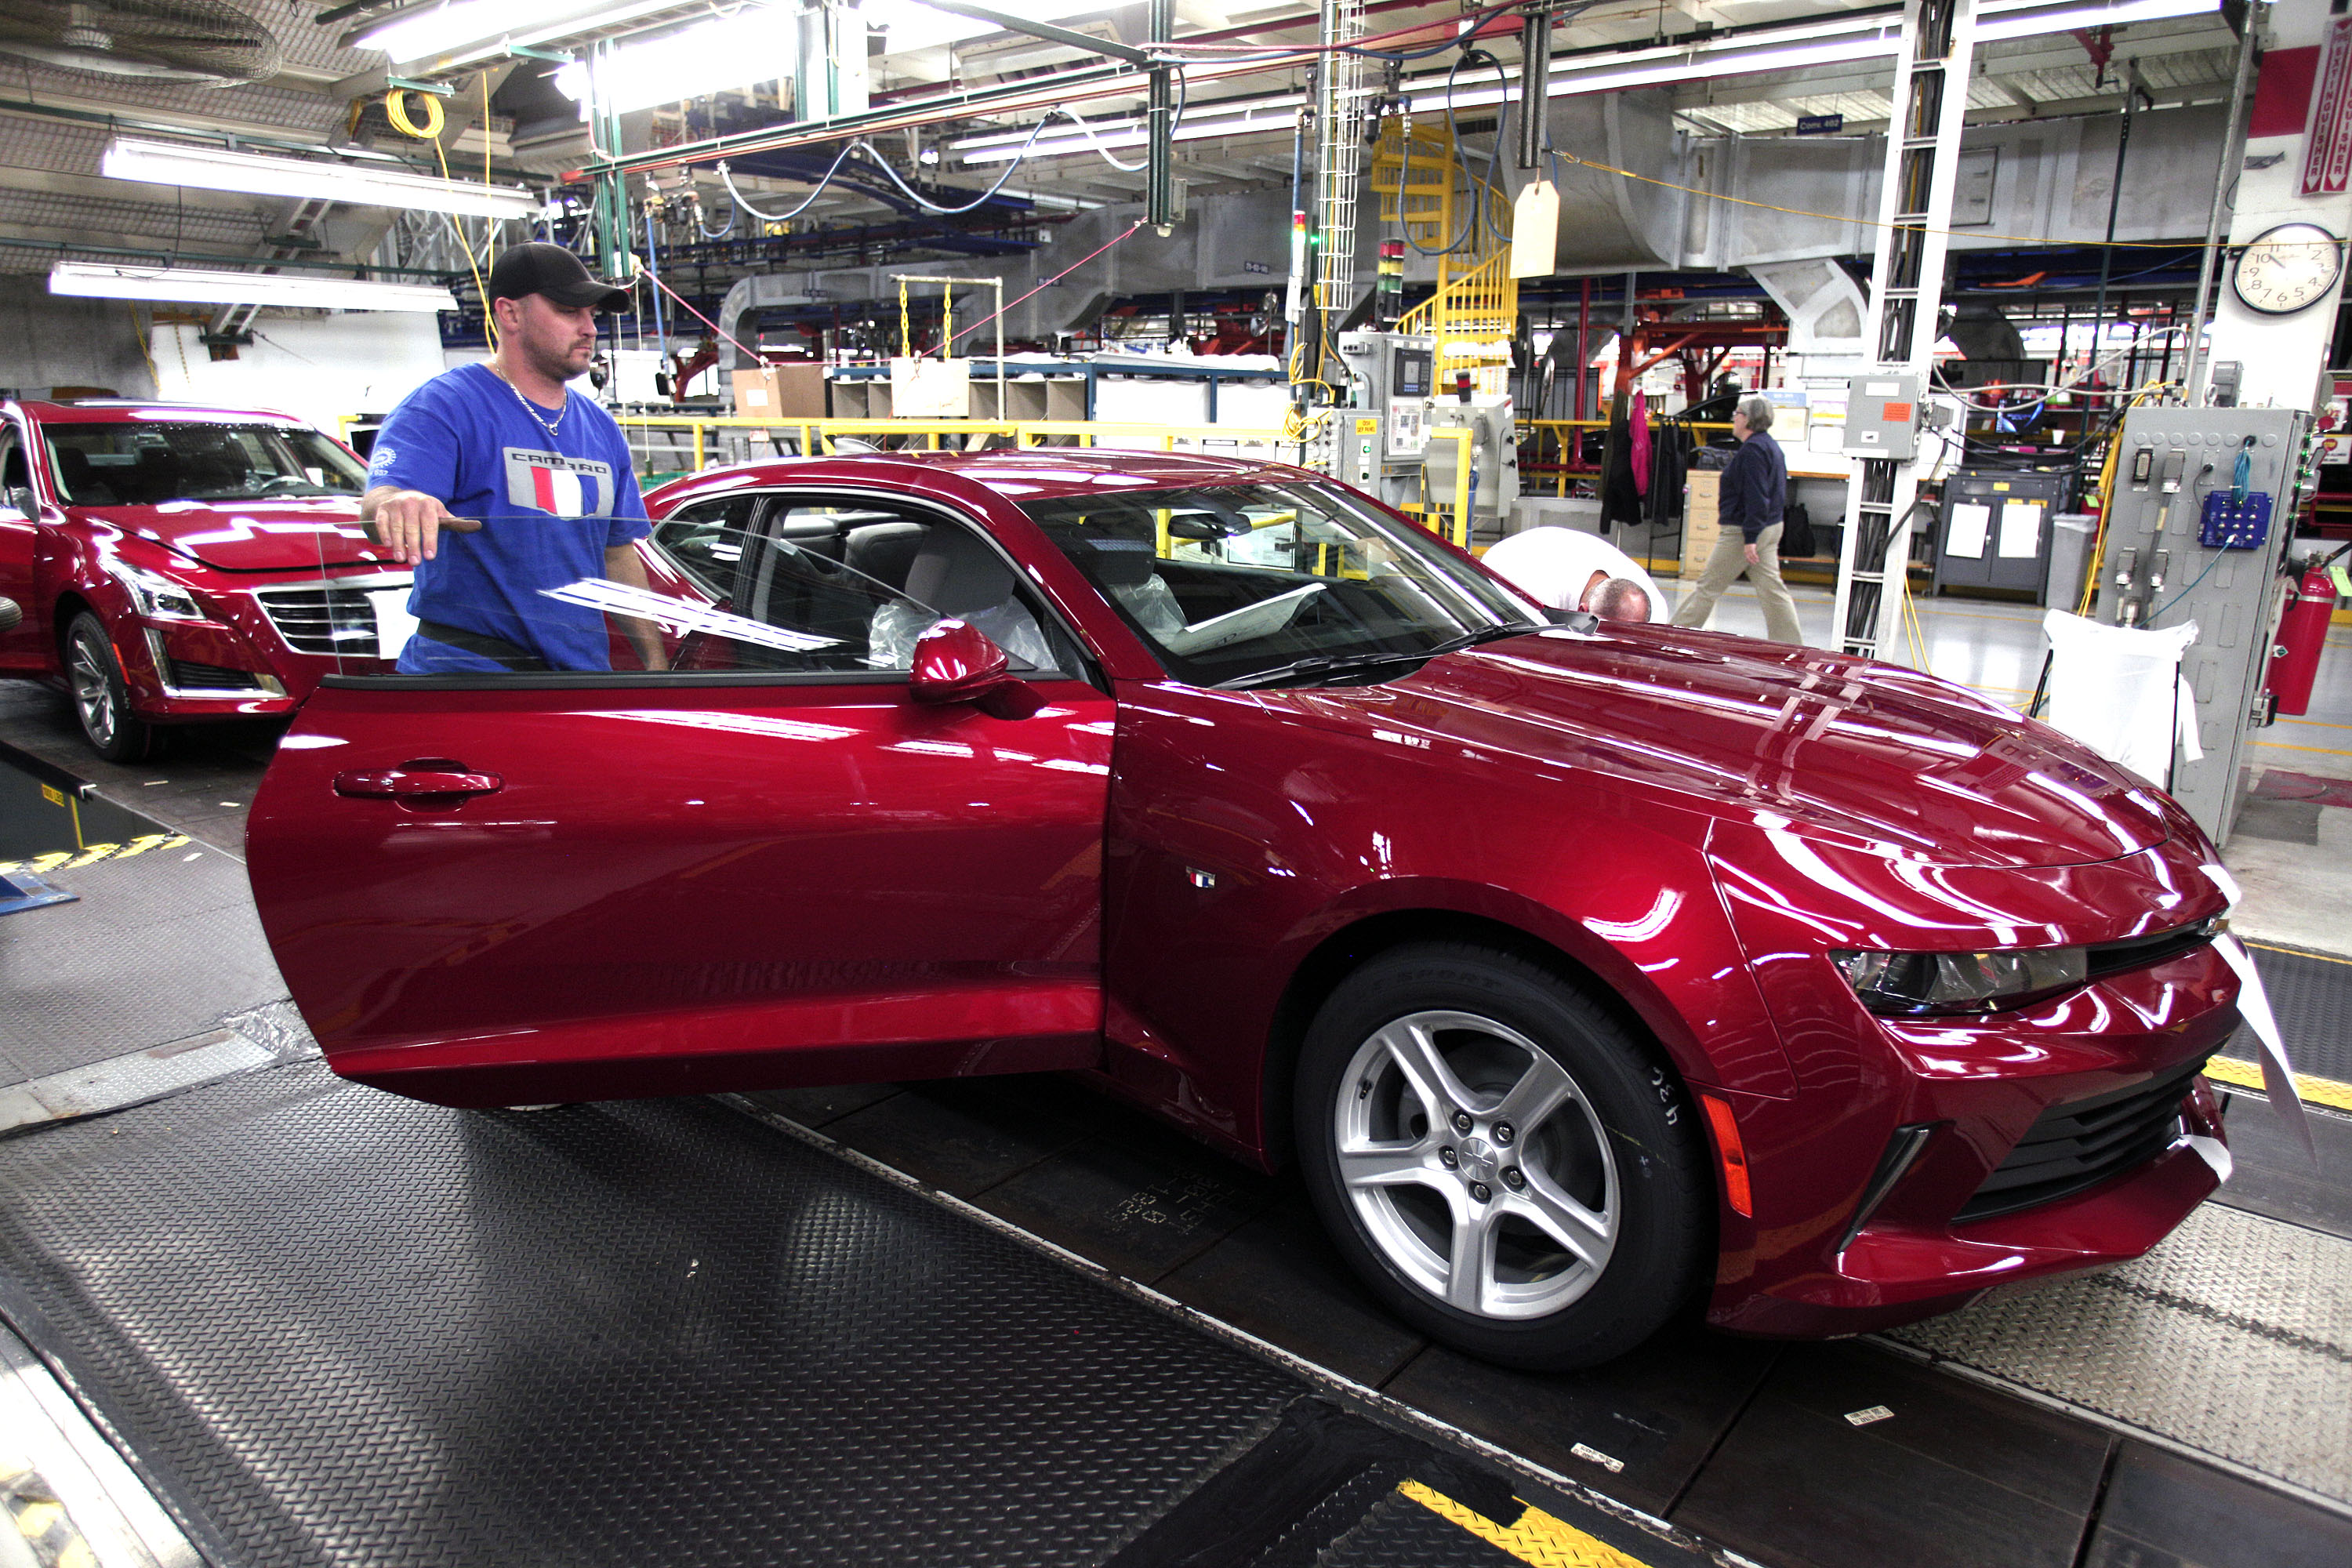 A GM worker puts the finishing touches on a new General Motors 2016 Chevrolet Camaro as it rolls off the production line at GM's Lansing Grand River Assembly Plant October 26, 2015 in Lansing, Michigan.